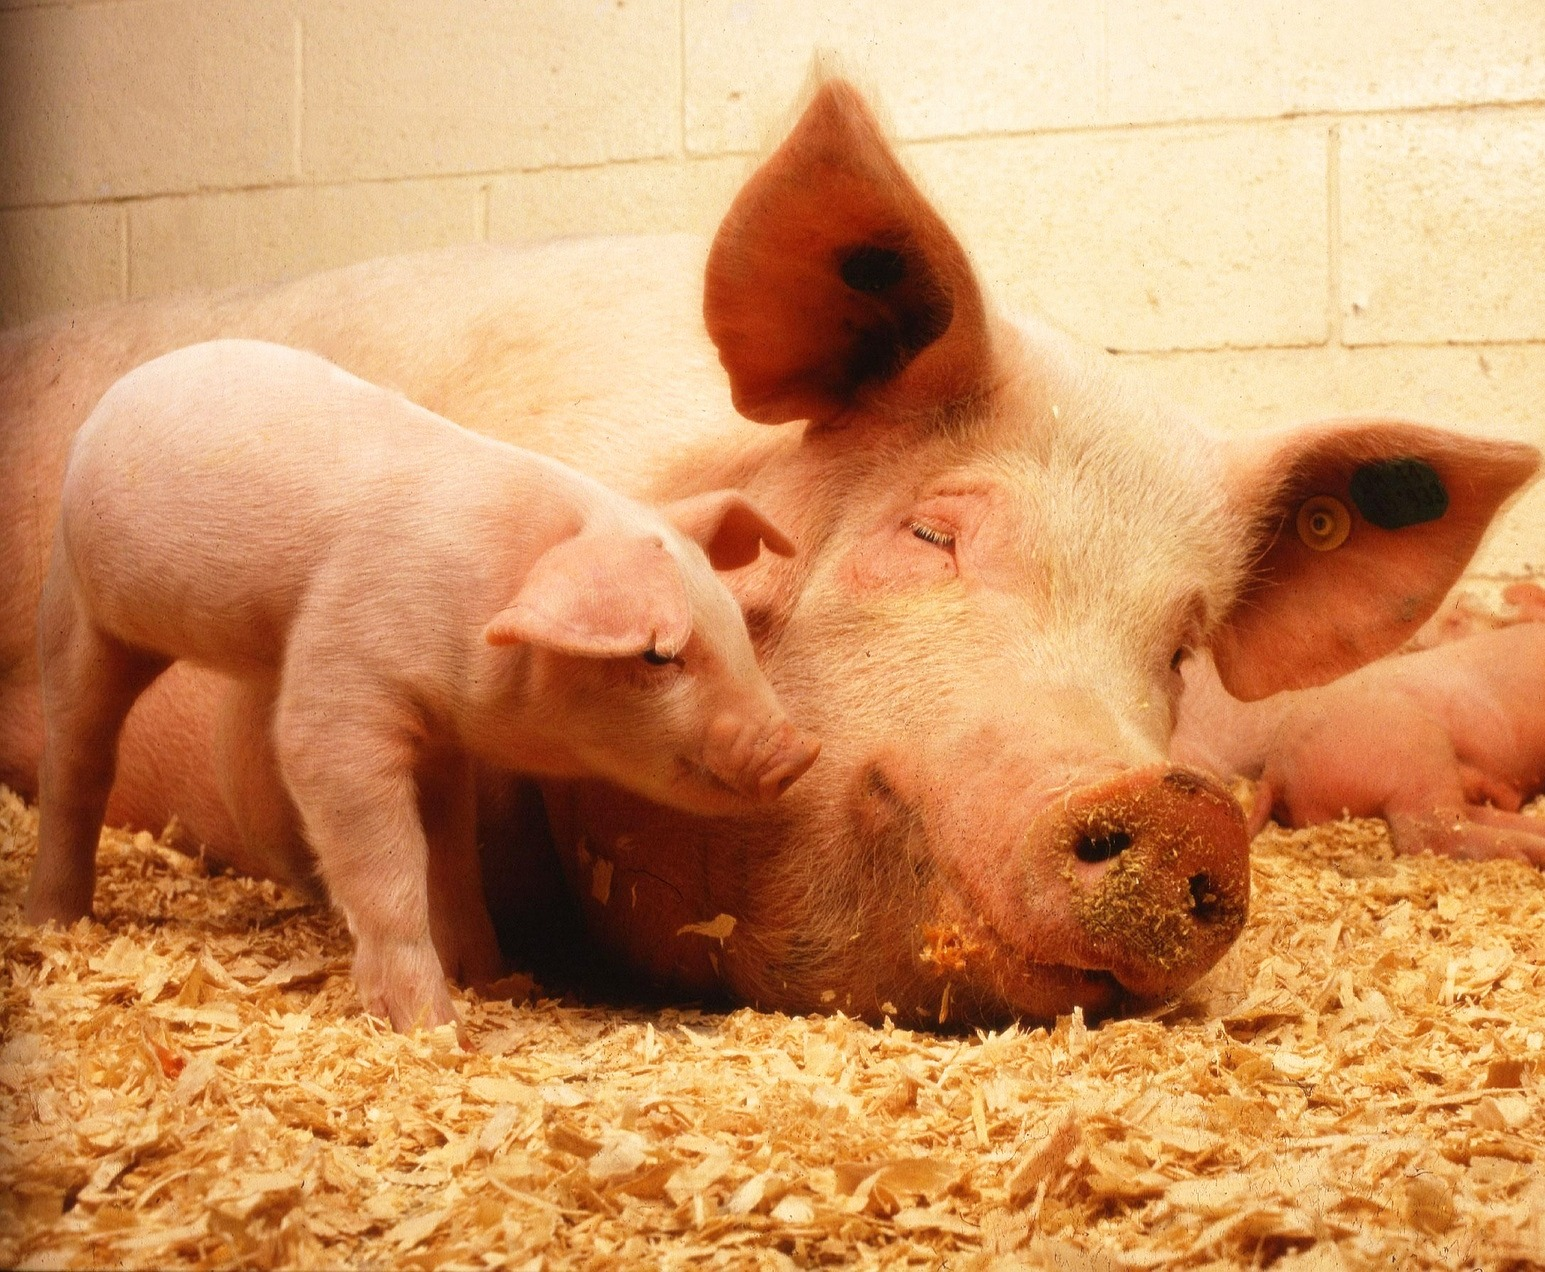 Pigs can empathize